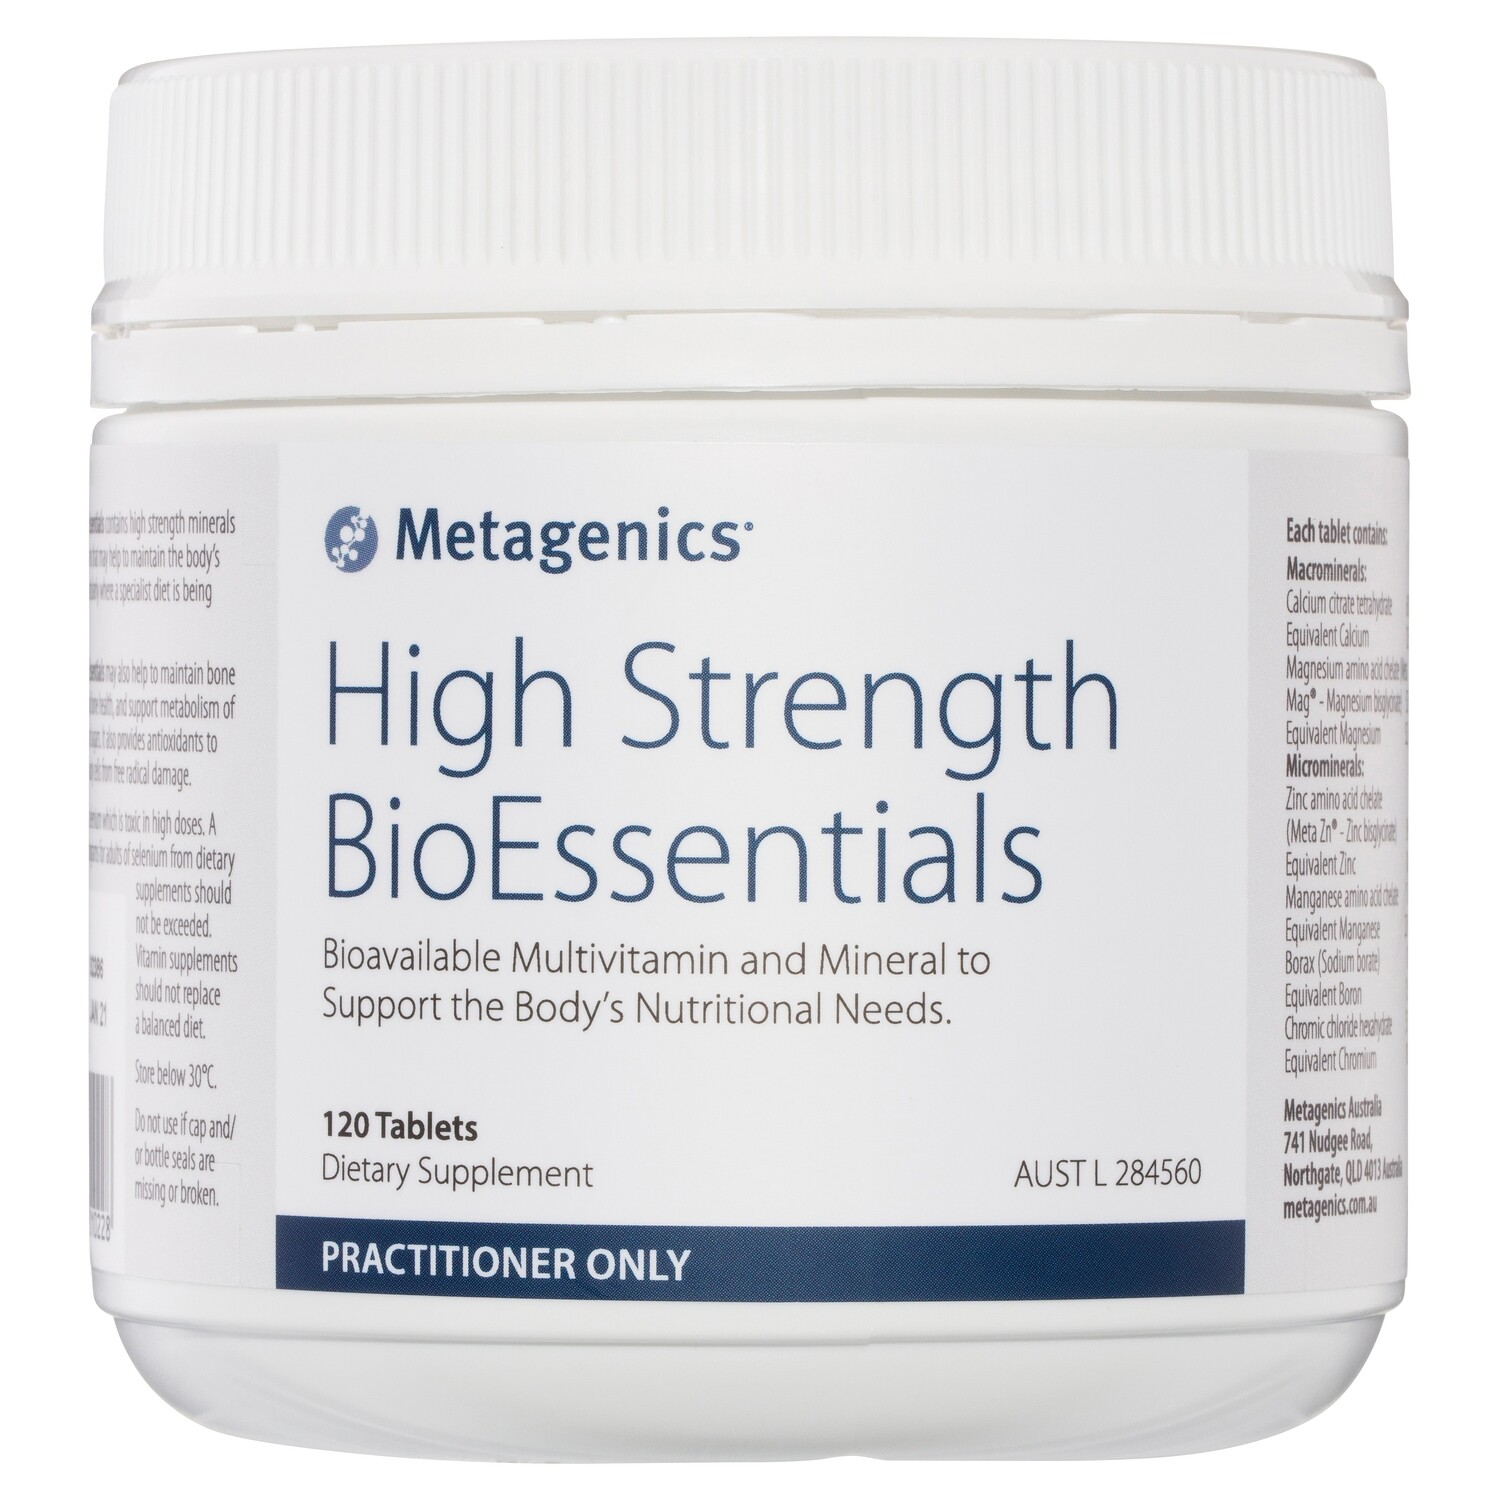 High Strength BioEssentials 120 tablets